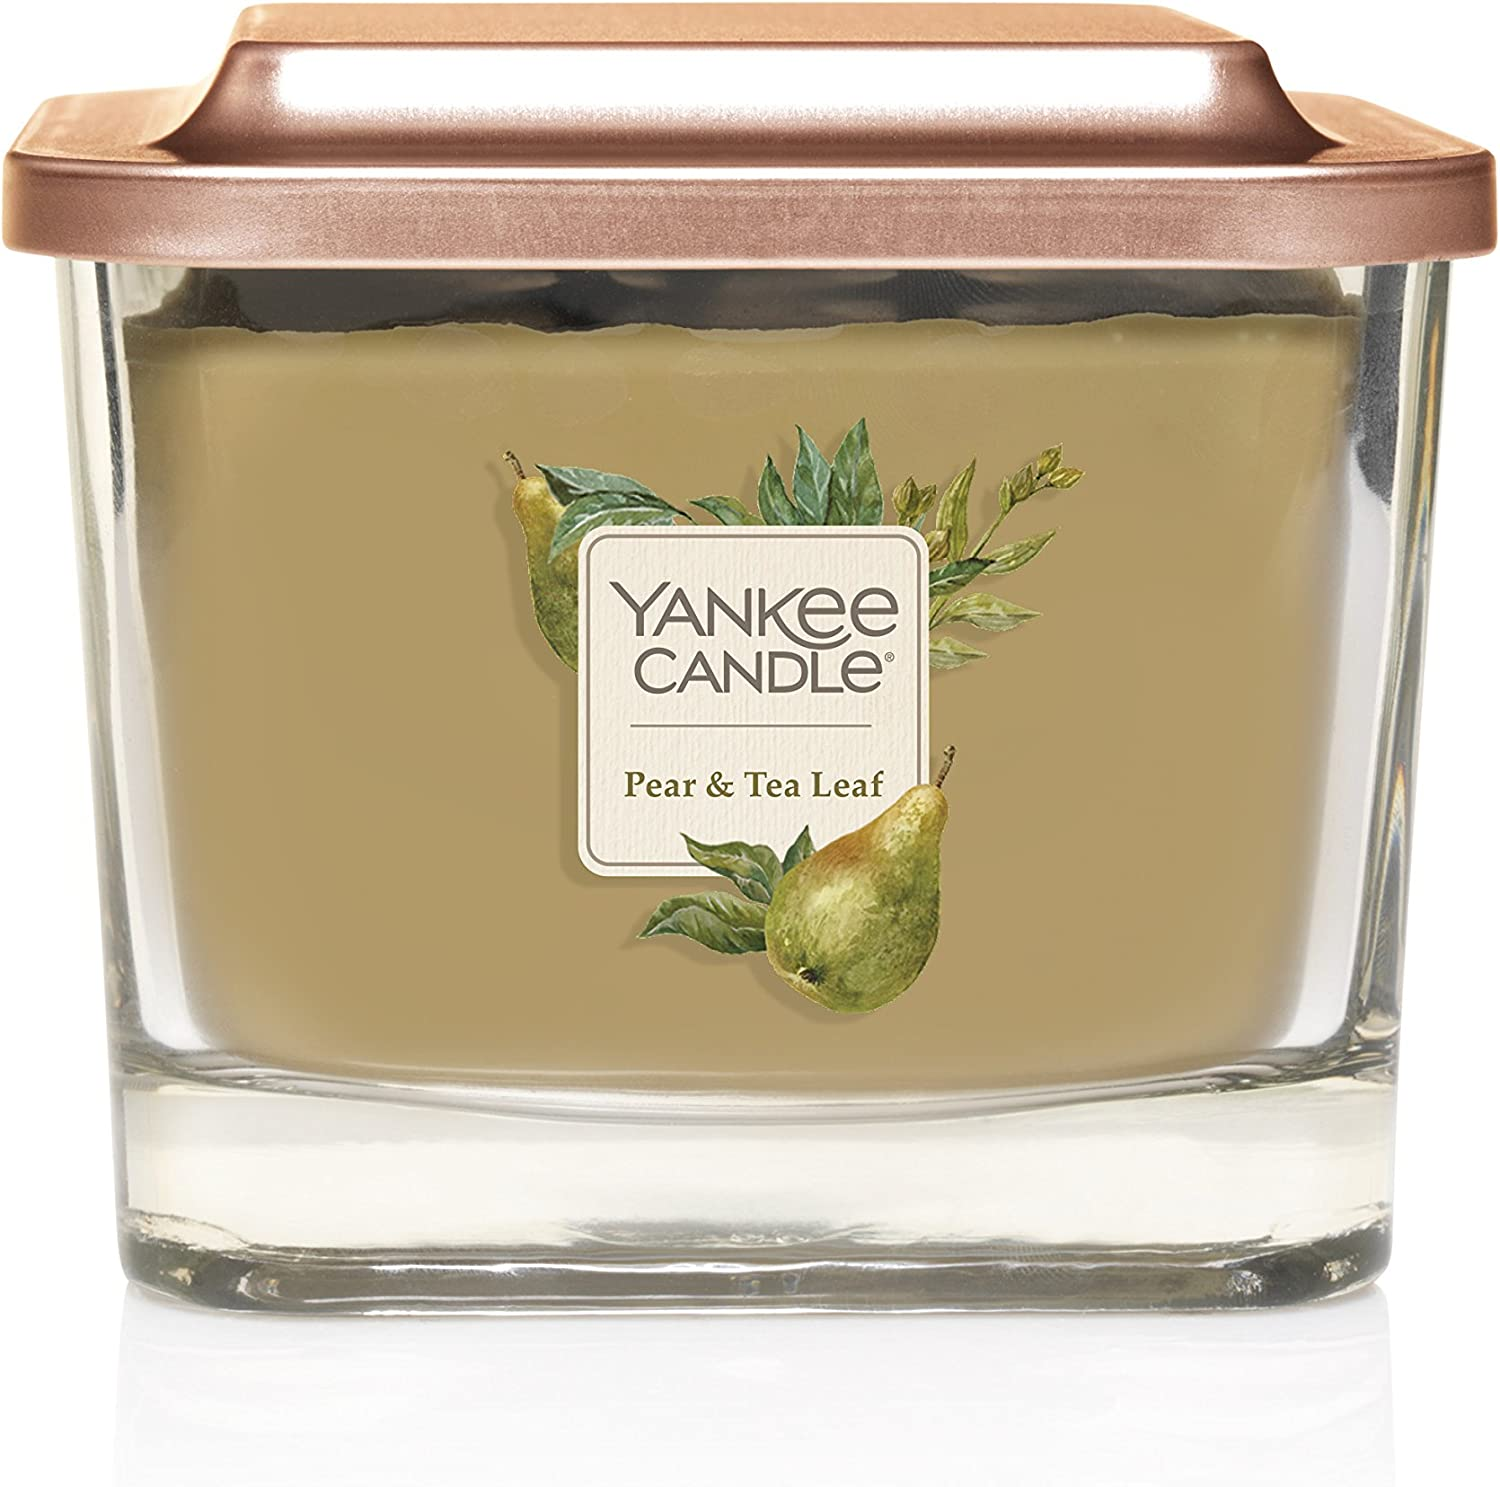 Yankee Candle Company Elevation Collection with Platform Lid, Medium 3-Wick Candle, Pear & Tea Leaf